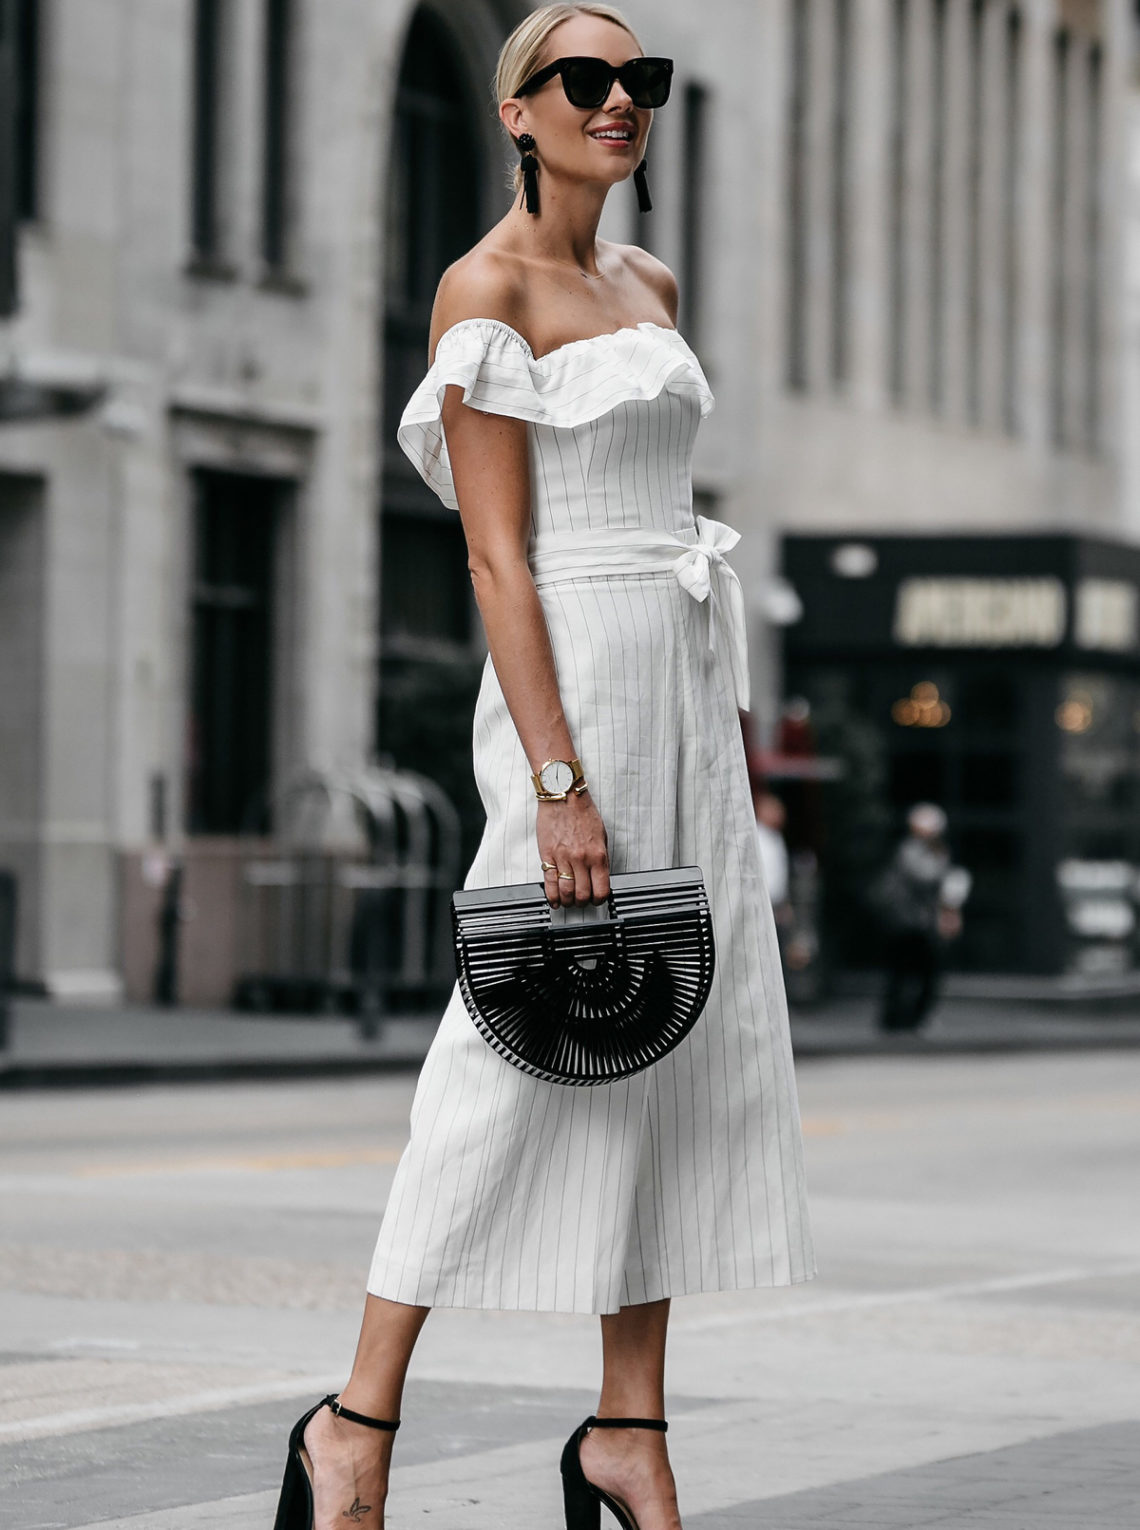 Blonde woman wearing Club Monaco white off-the-shoulder ruffle jumpsuit Cult Gaia Black Acrylic Ark Clutch Black Ankle Strap Heeled Sandals Black Tassel Earrings